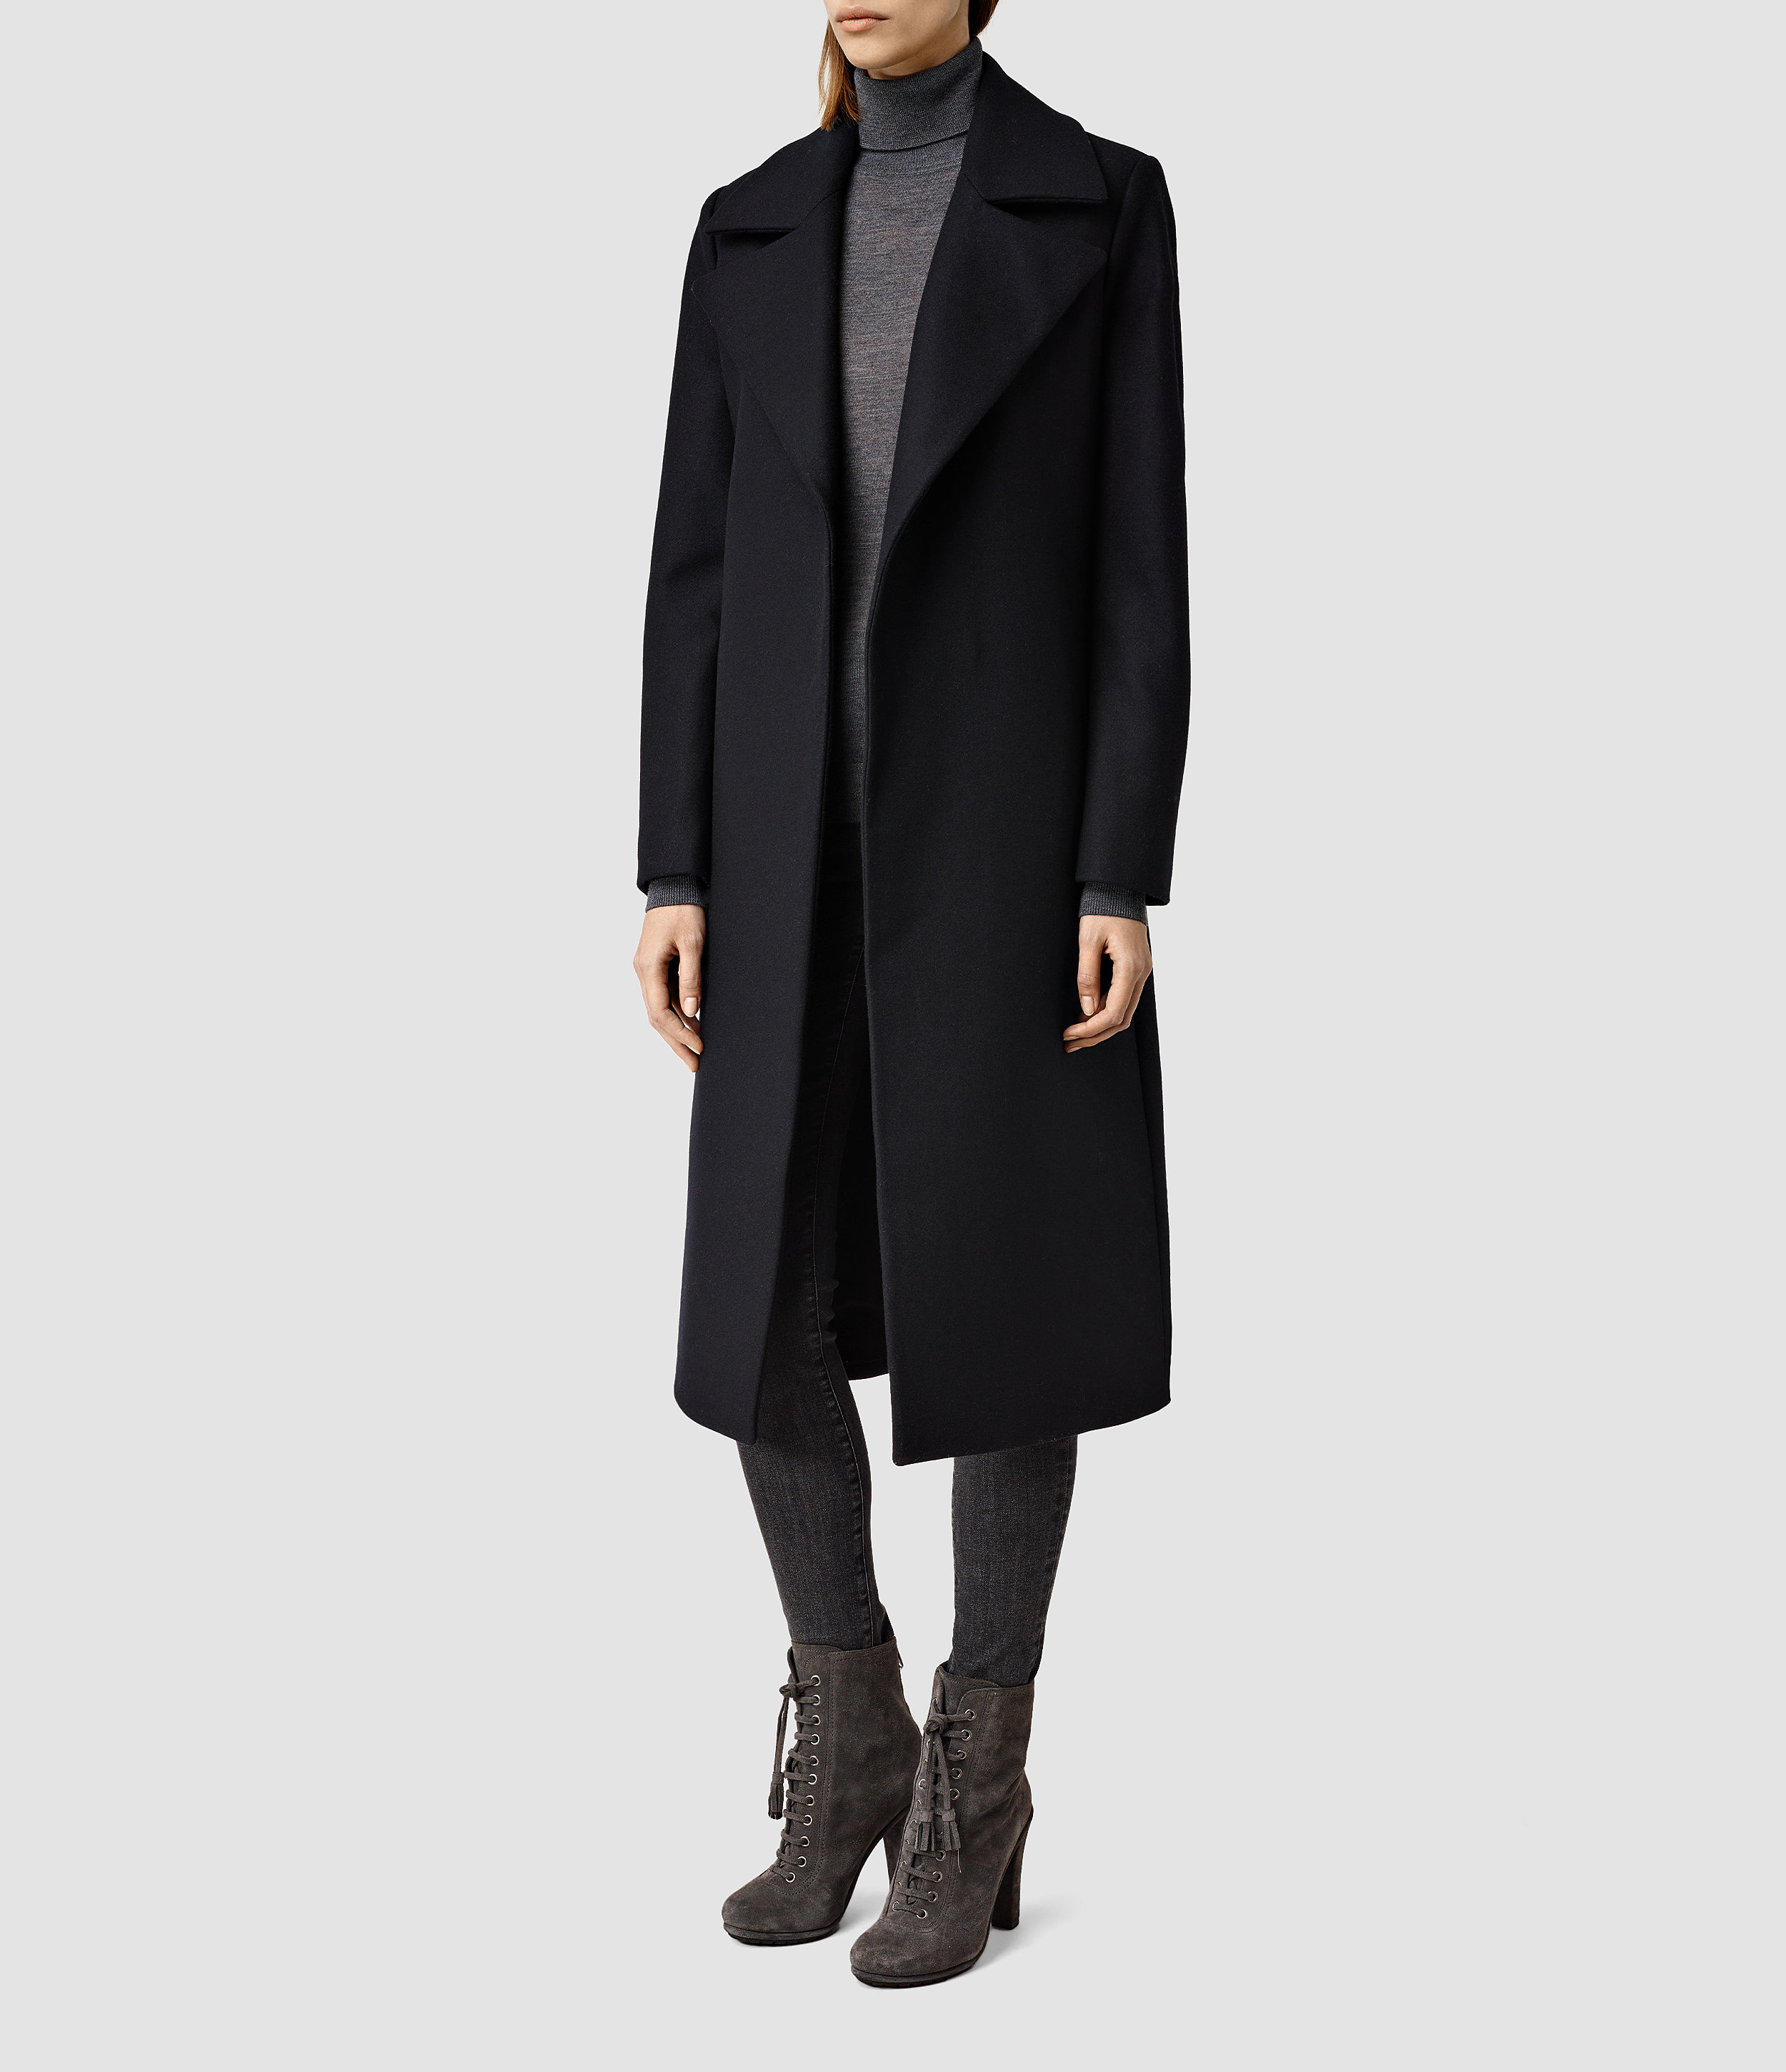 https://cdnc.lystit.com/photos/5c4d-2015/11/04/allsaints-ink-blue-iya-coat-blue-product-2-335341886-normal.jpeg